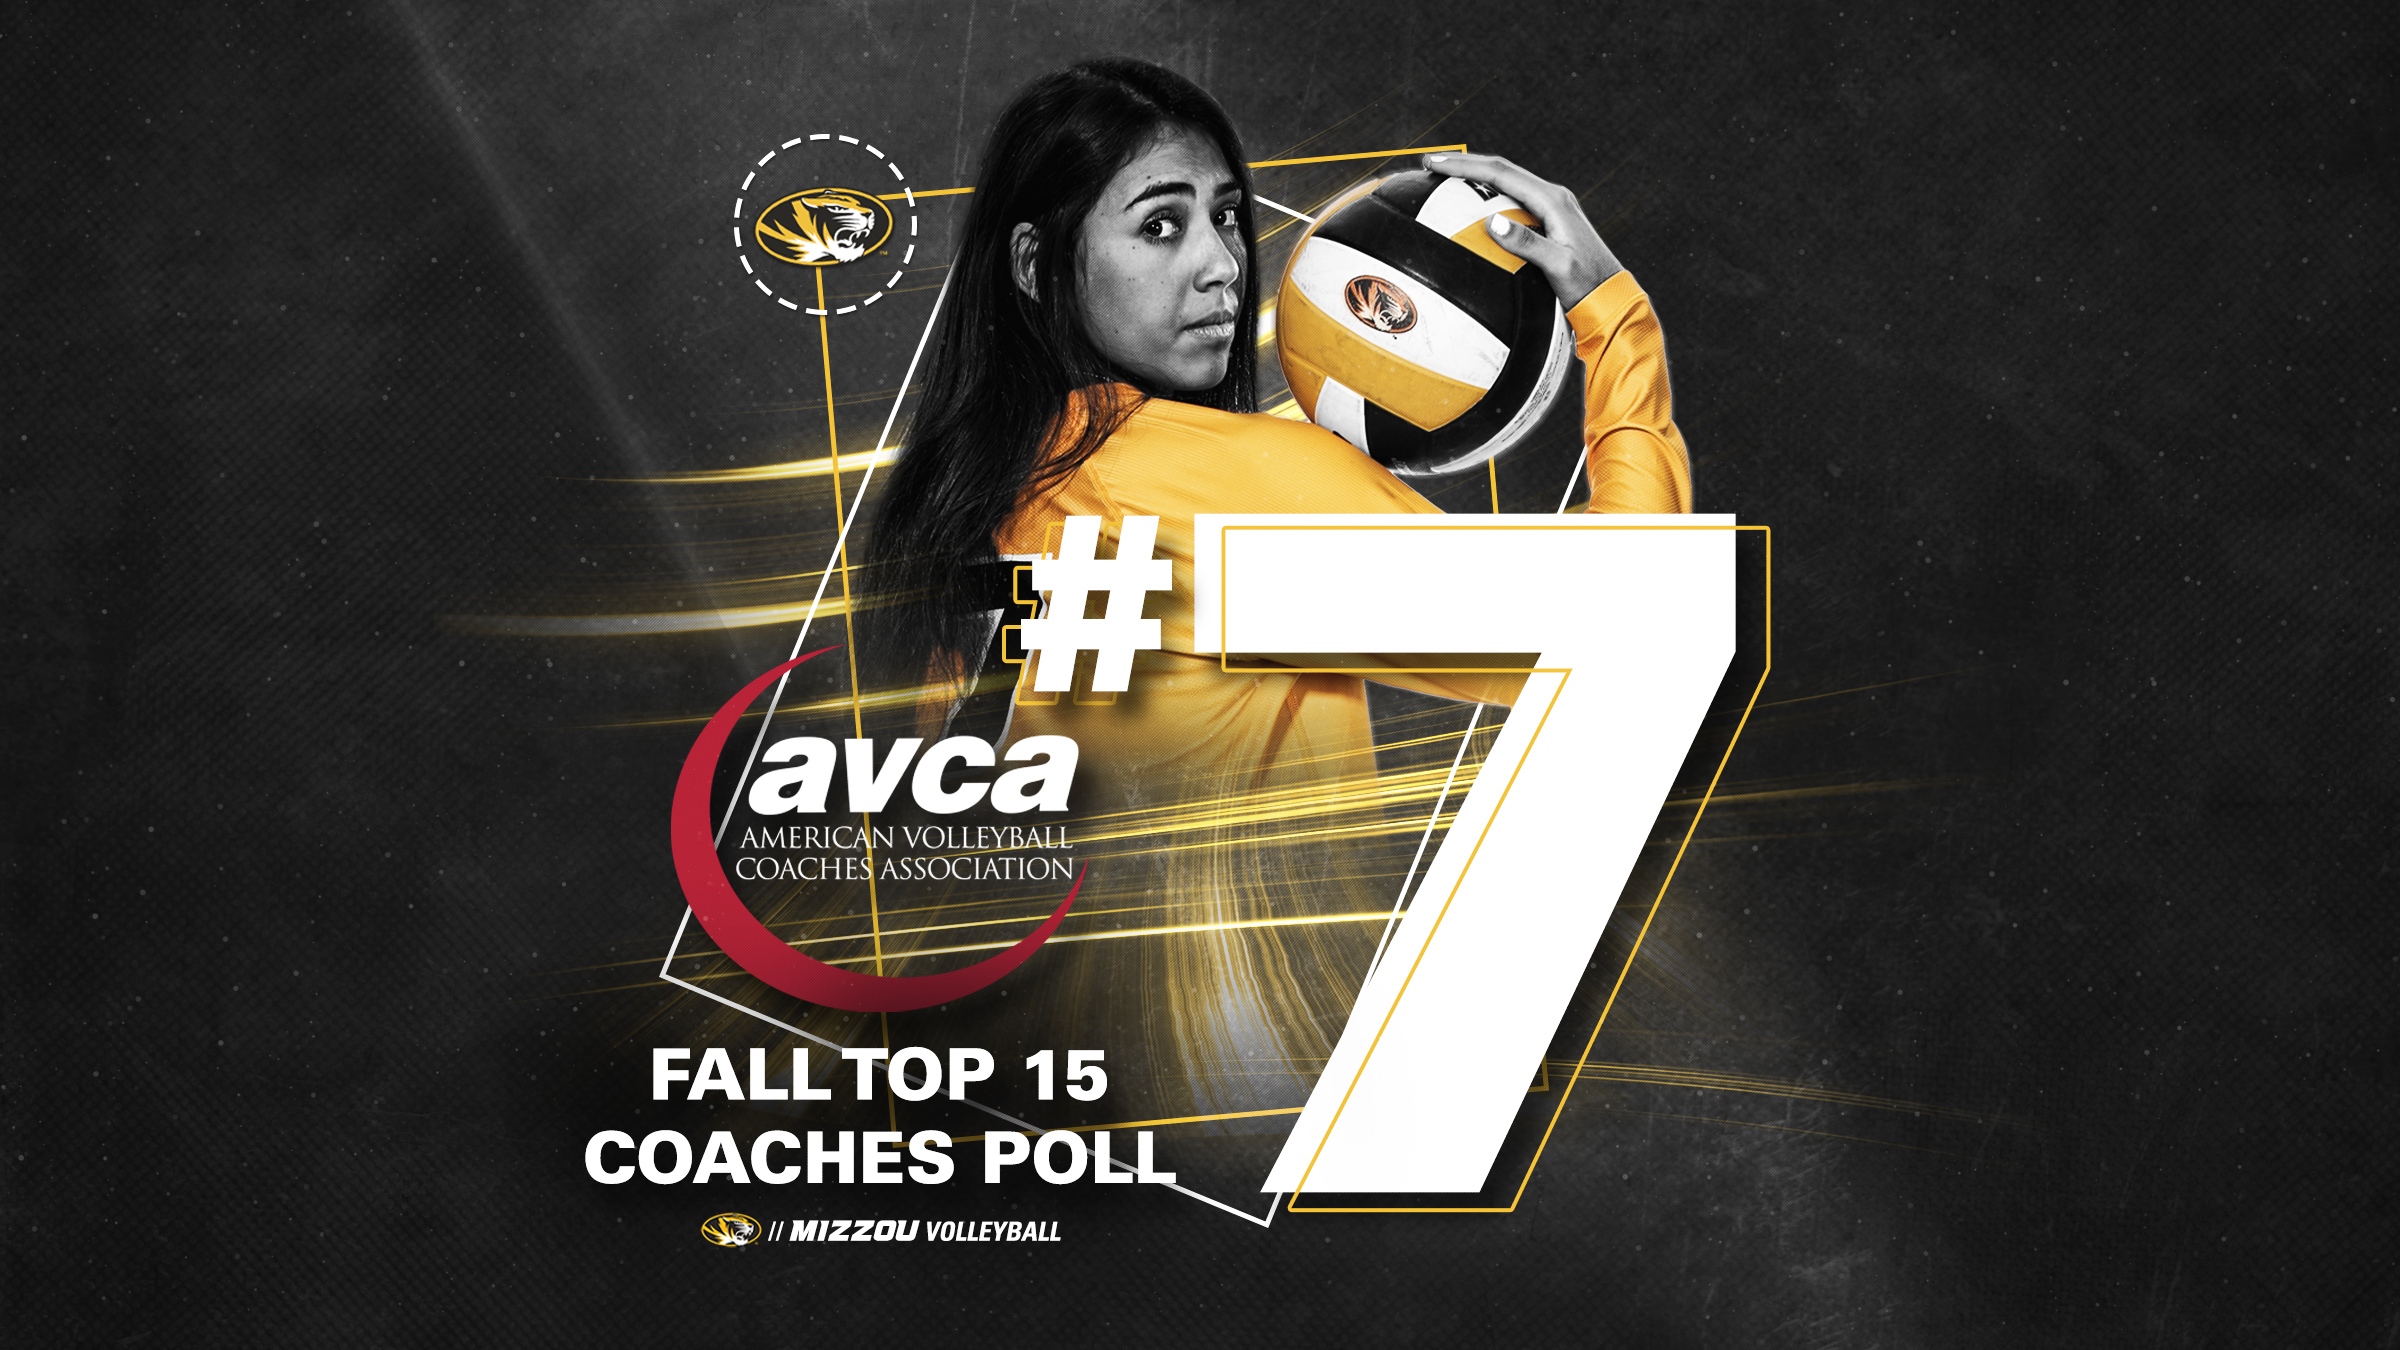 https mutigers com news 2020 9 30 mizzou volleyball ranked no 7 in first avca fall coaches poll aspx